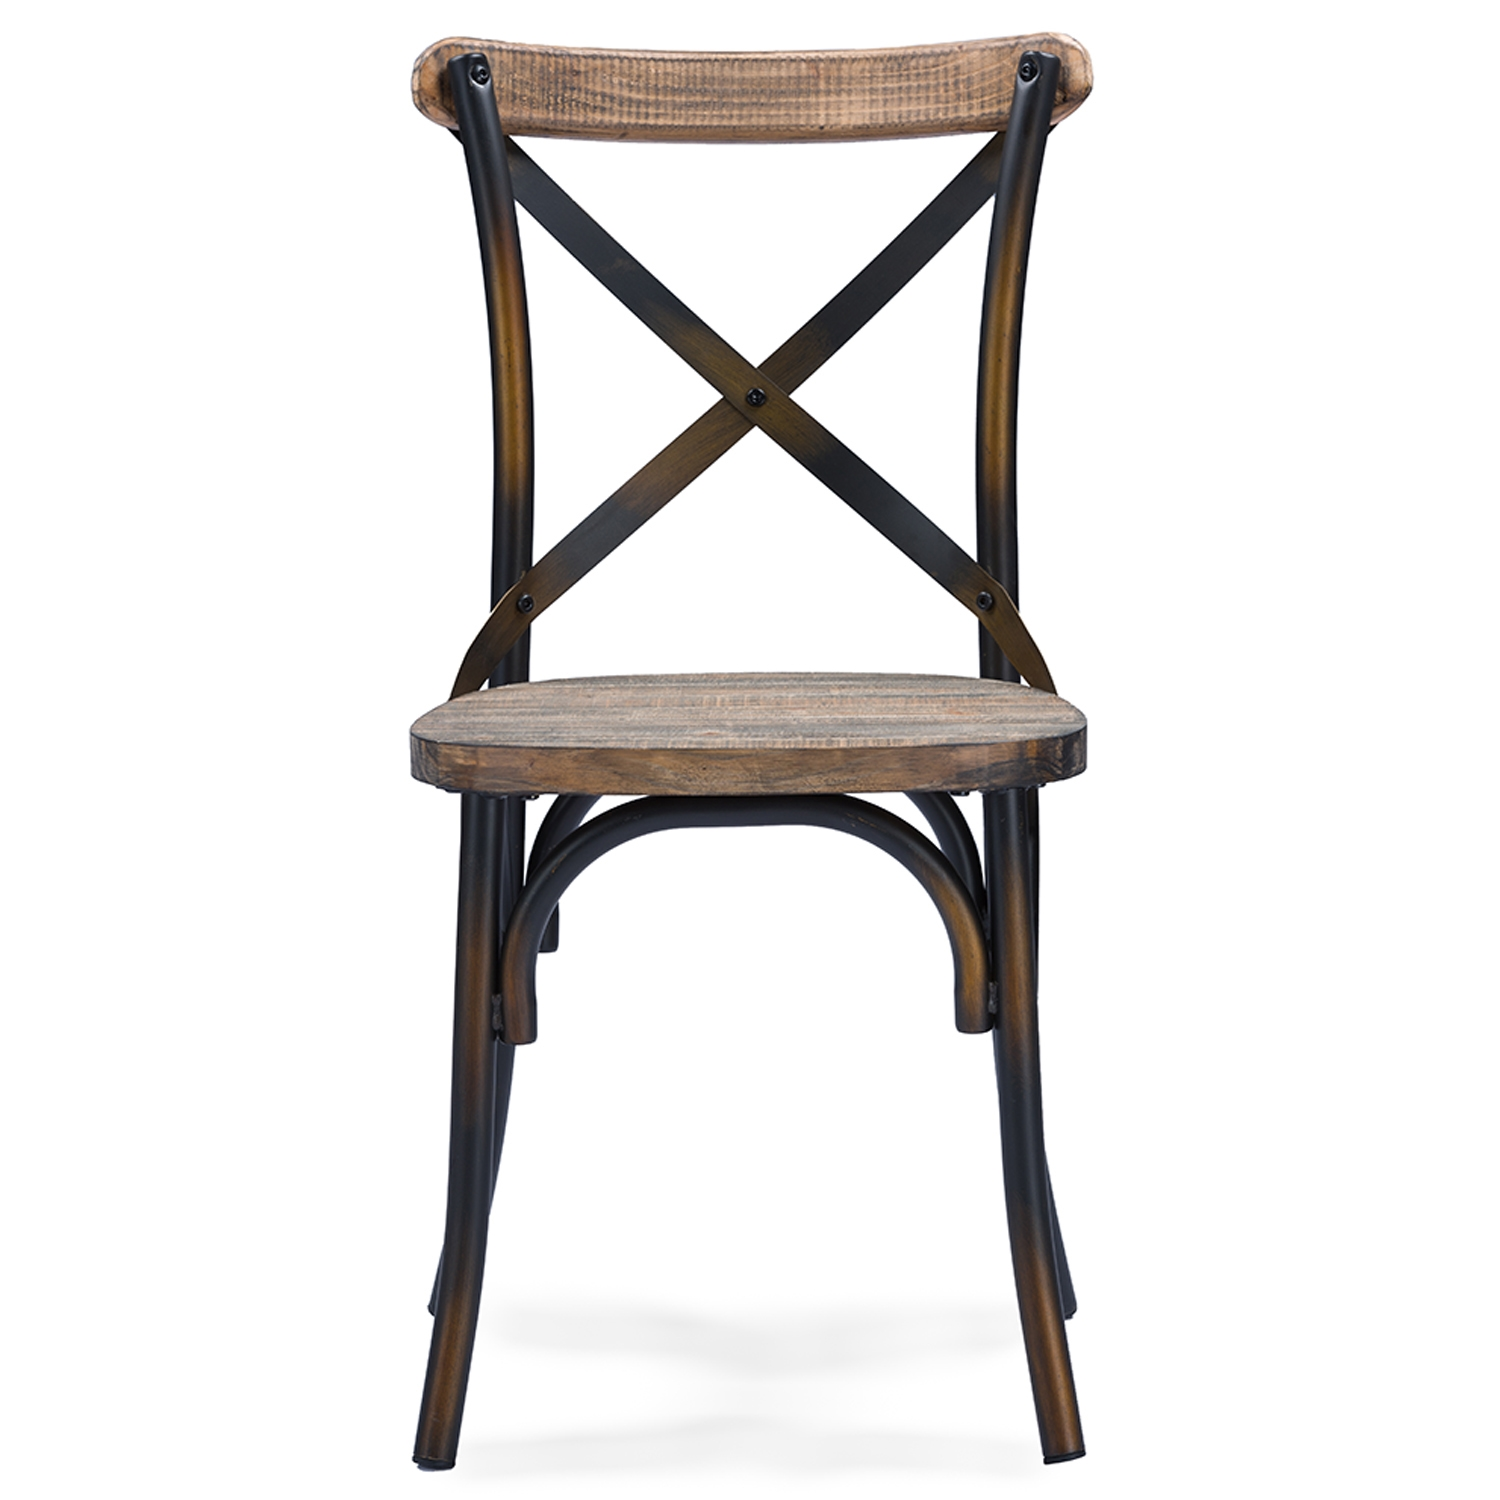 ... Baxton Studio Konstanze Industrial Walnut Wood And Metal Dining Chair  In Antique Cooper Finishing   IEM ...